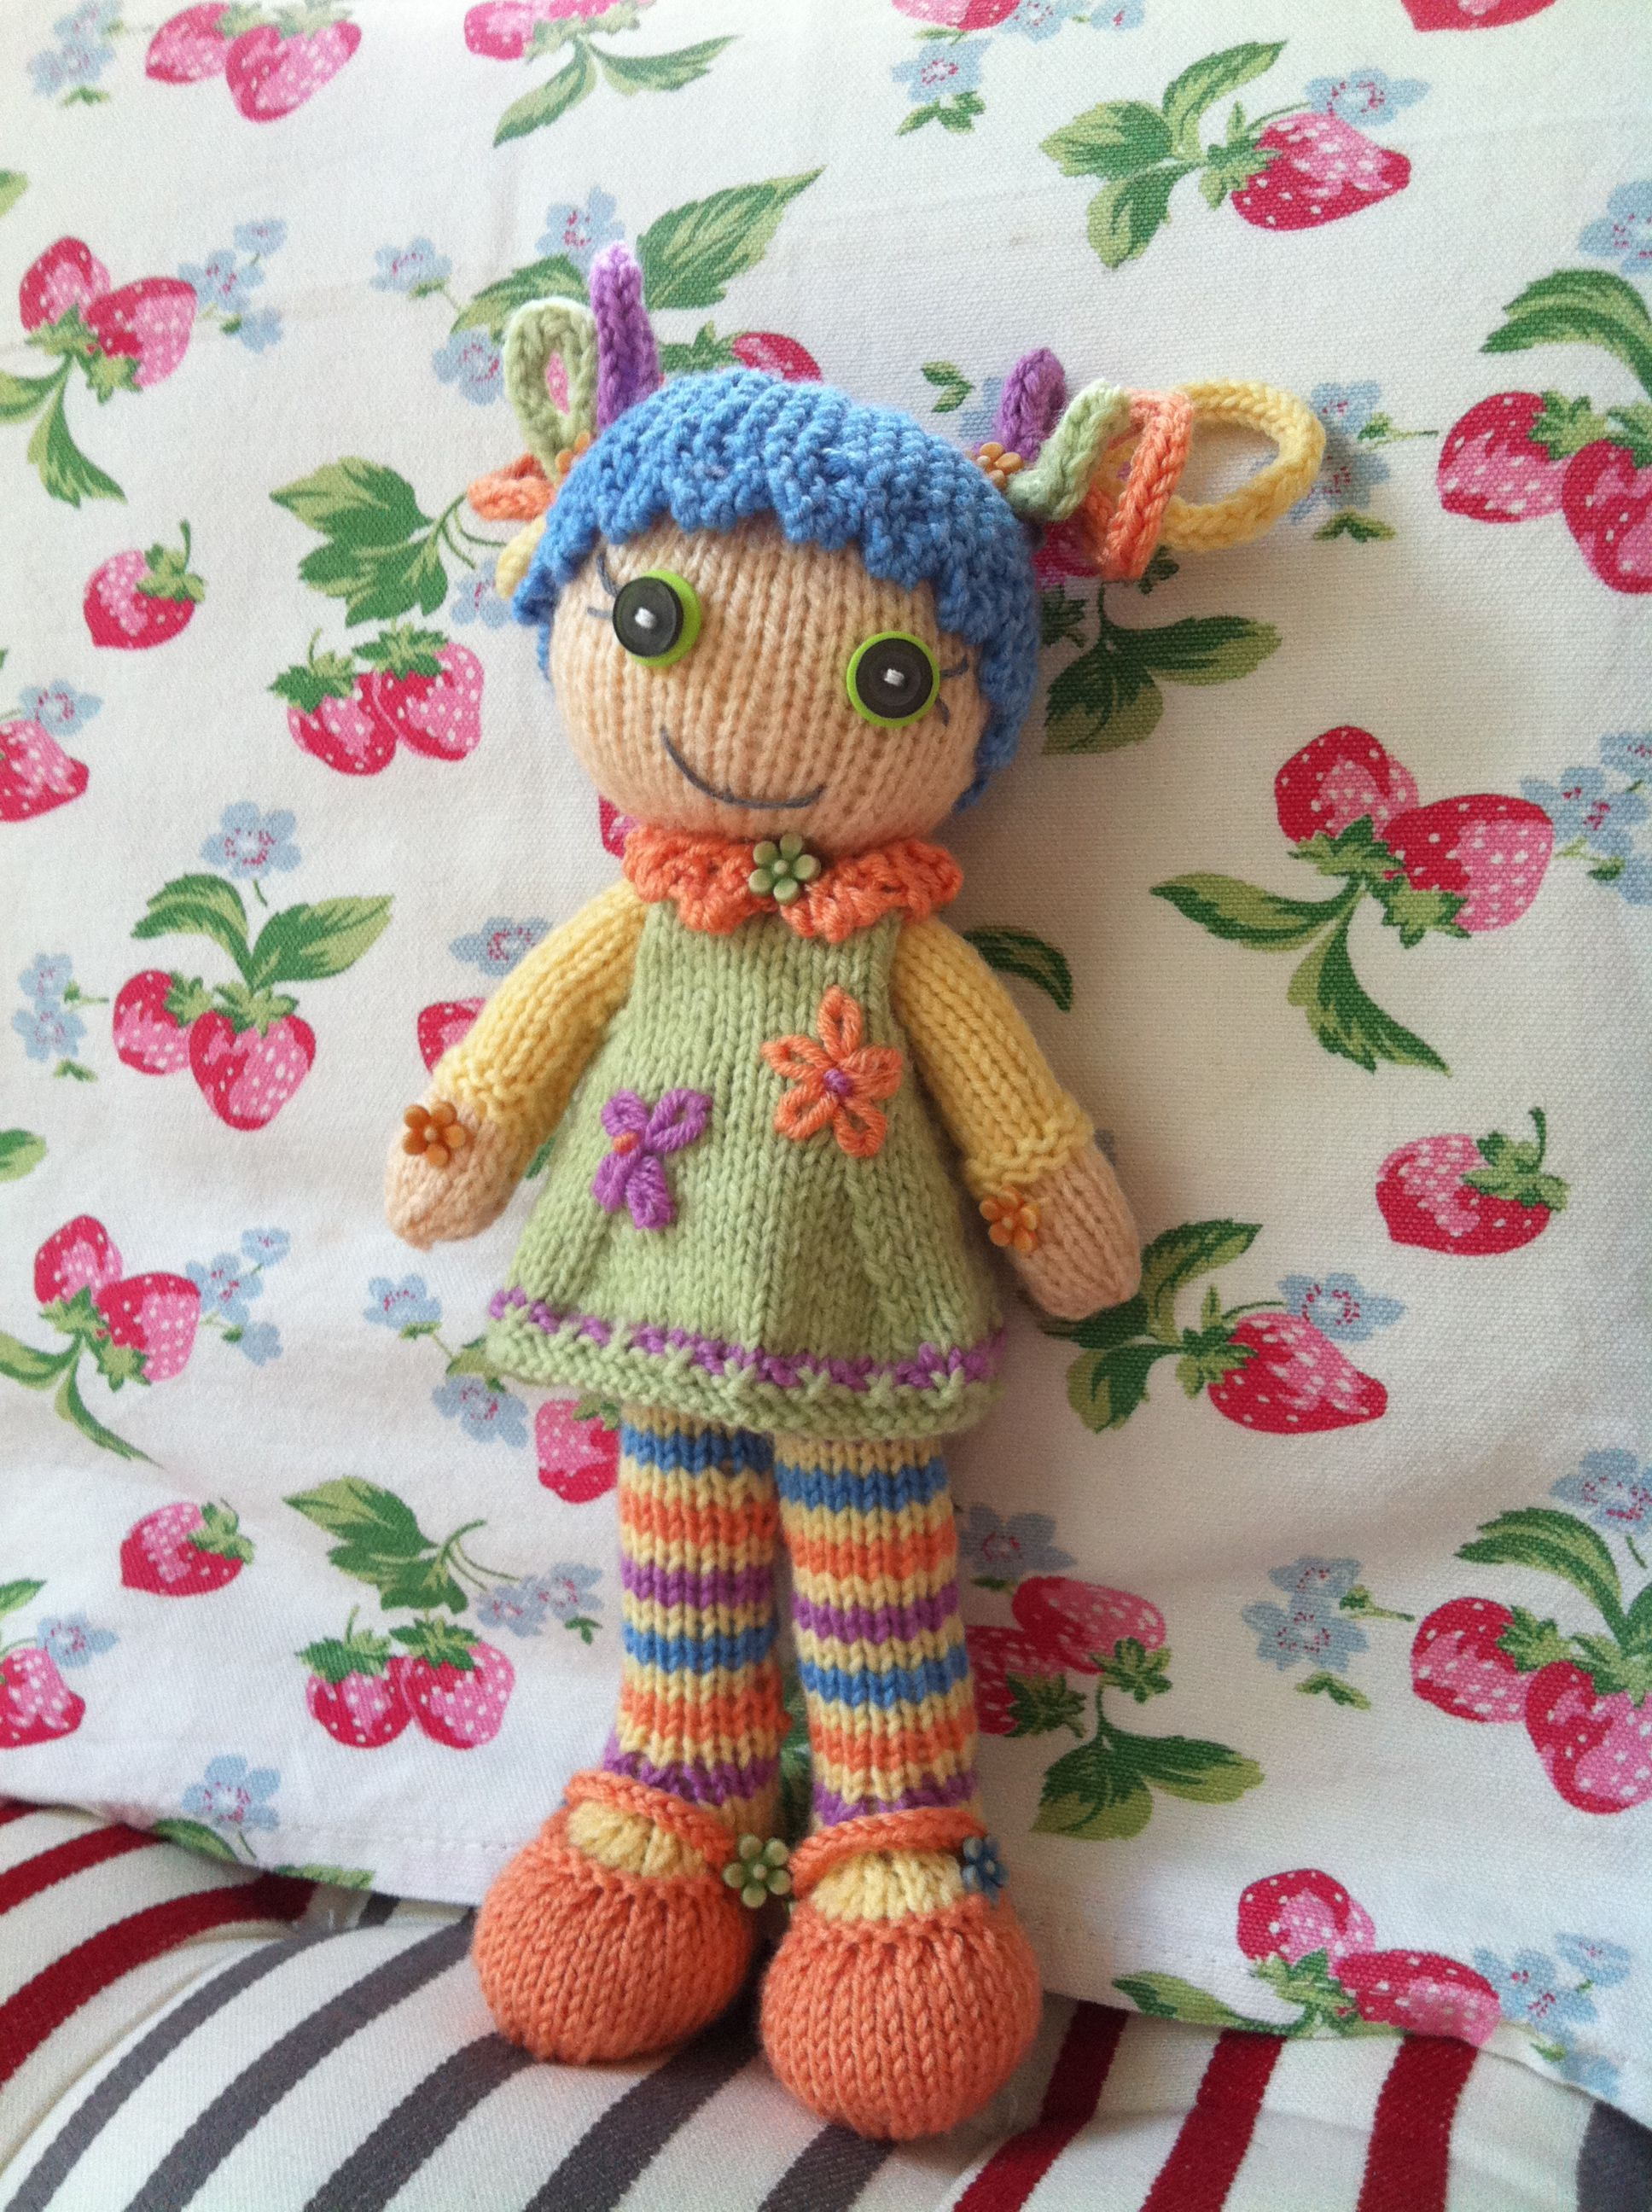 Hand Knit - Lalla (Precious) | My hand knit dolls and teddy bears ...